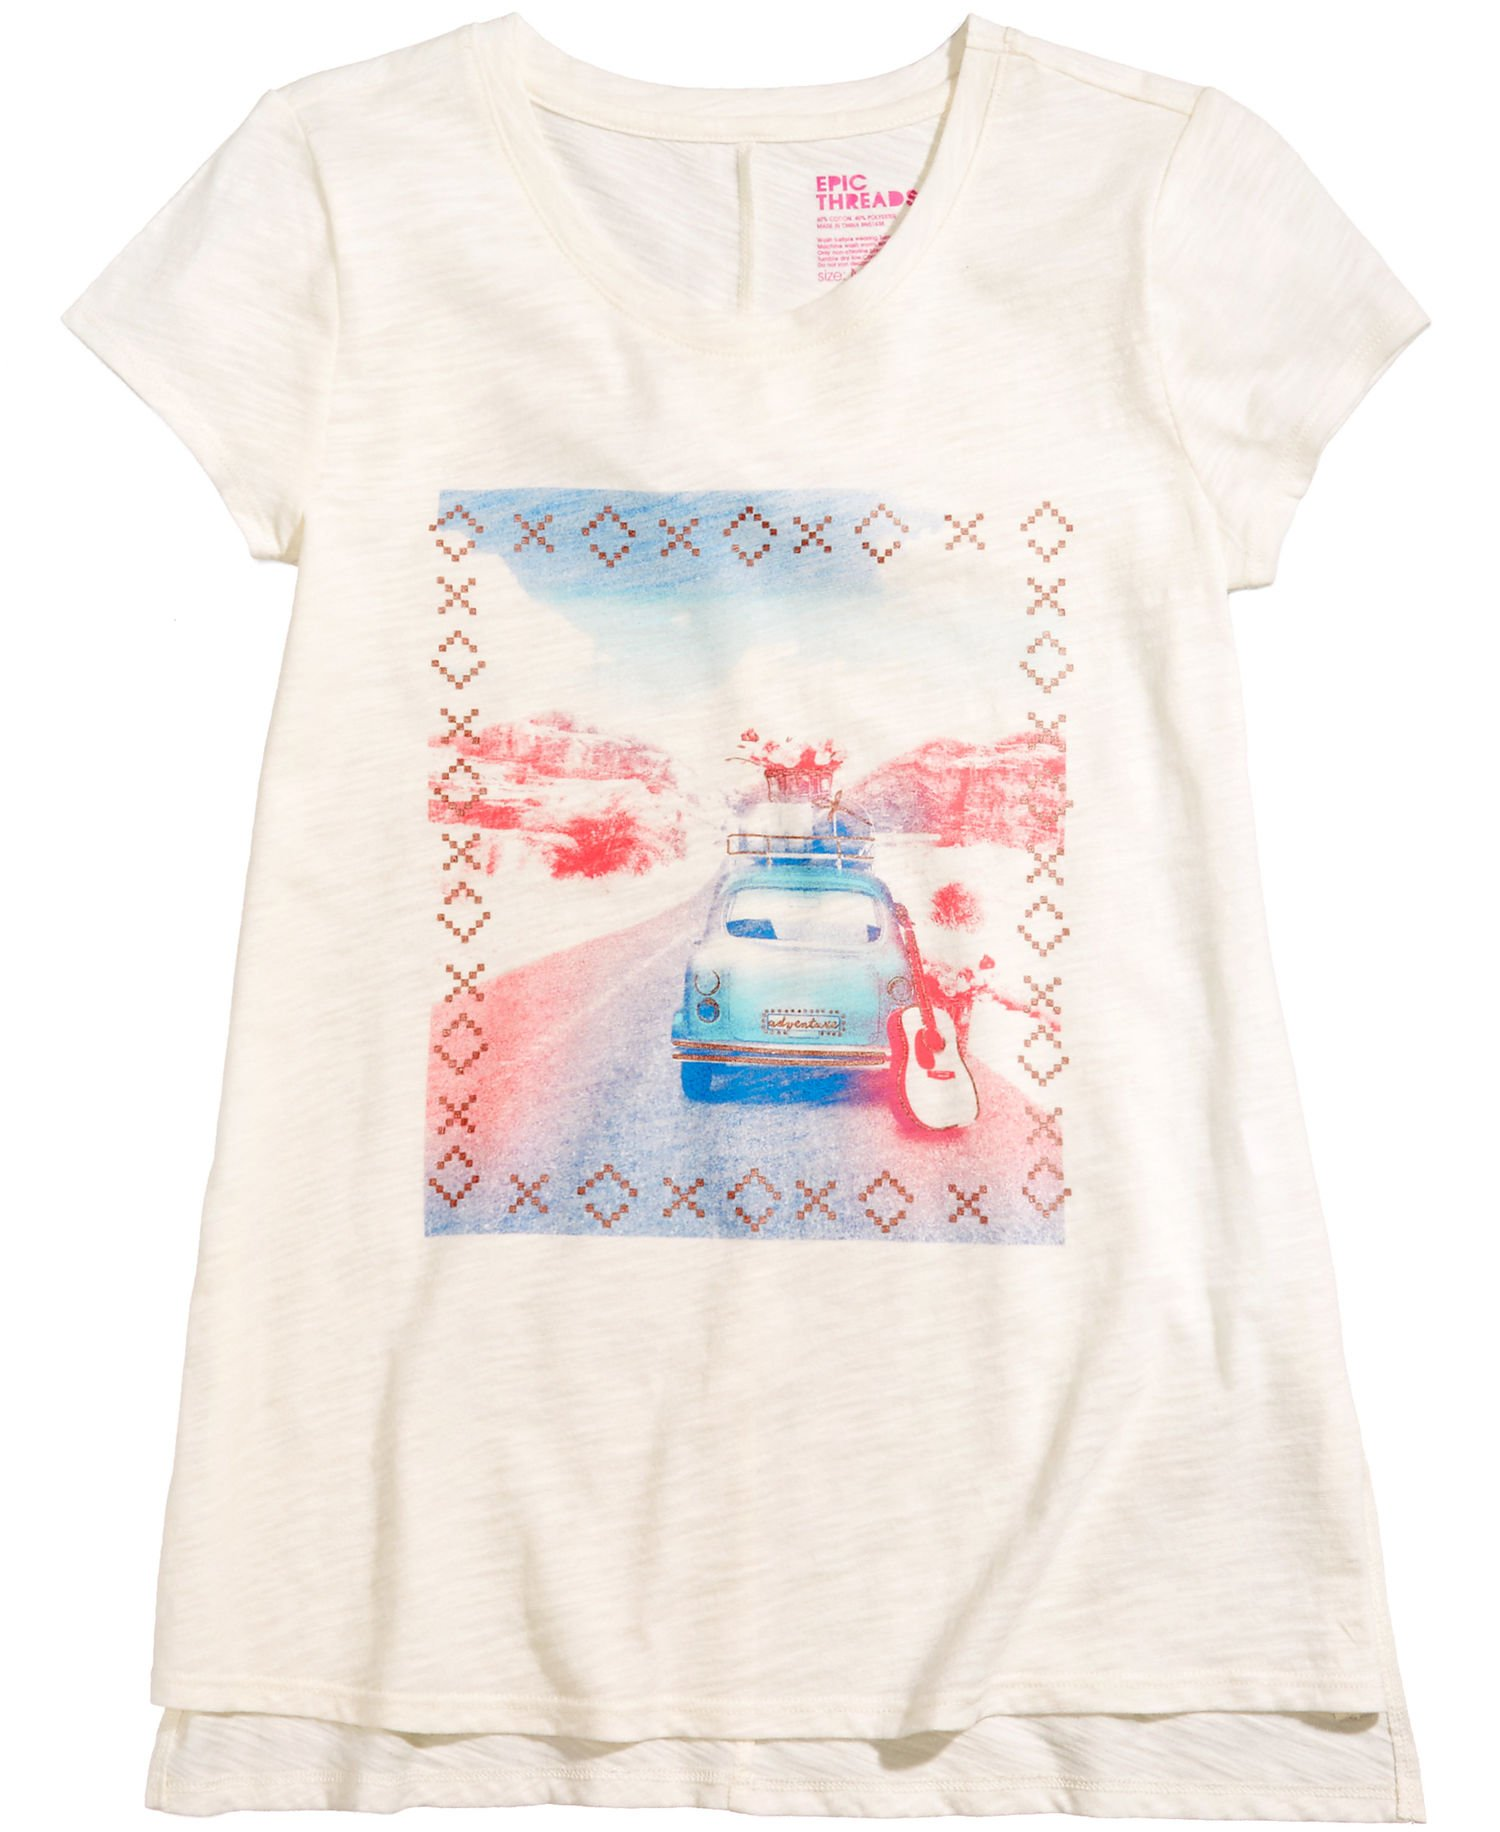 Epic Threads Girls T-Shirt Tee Shirt (Small, Holiday Ivory)